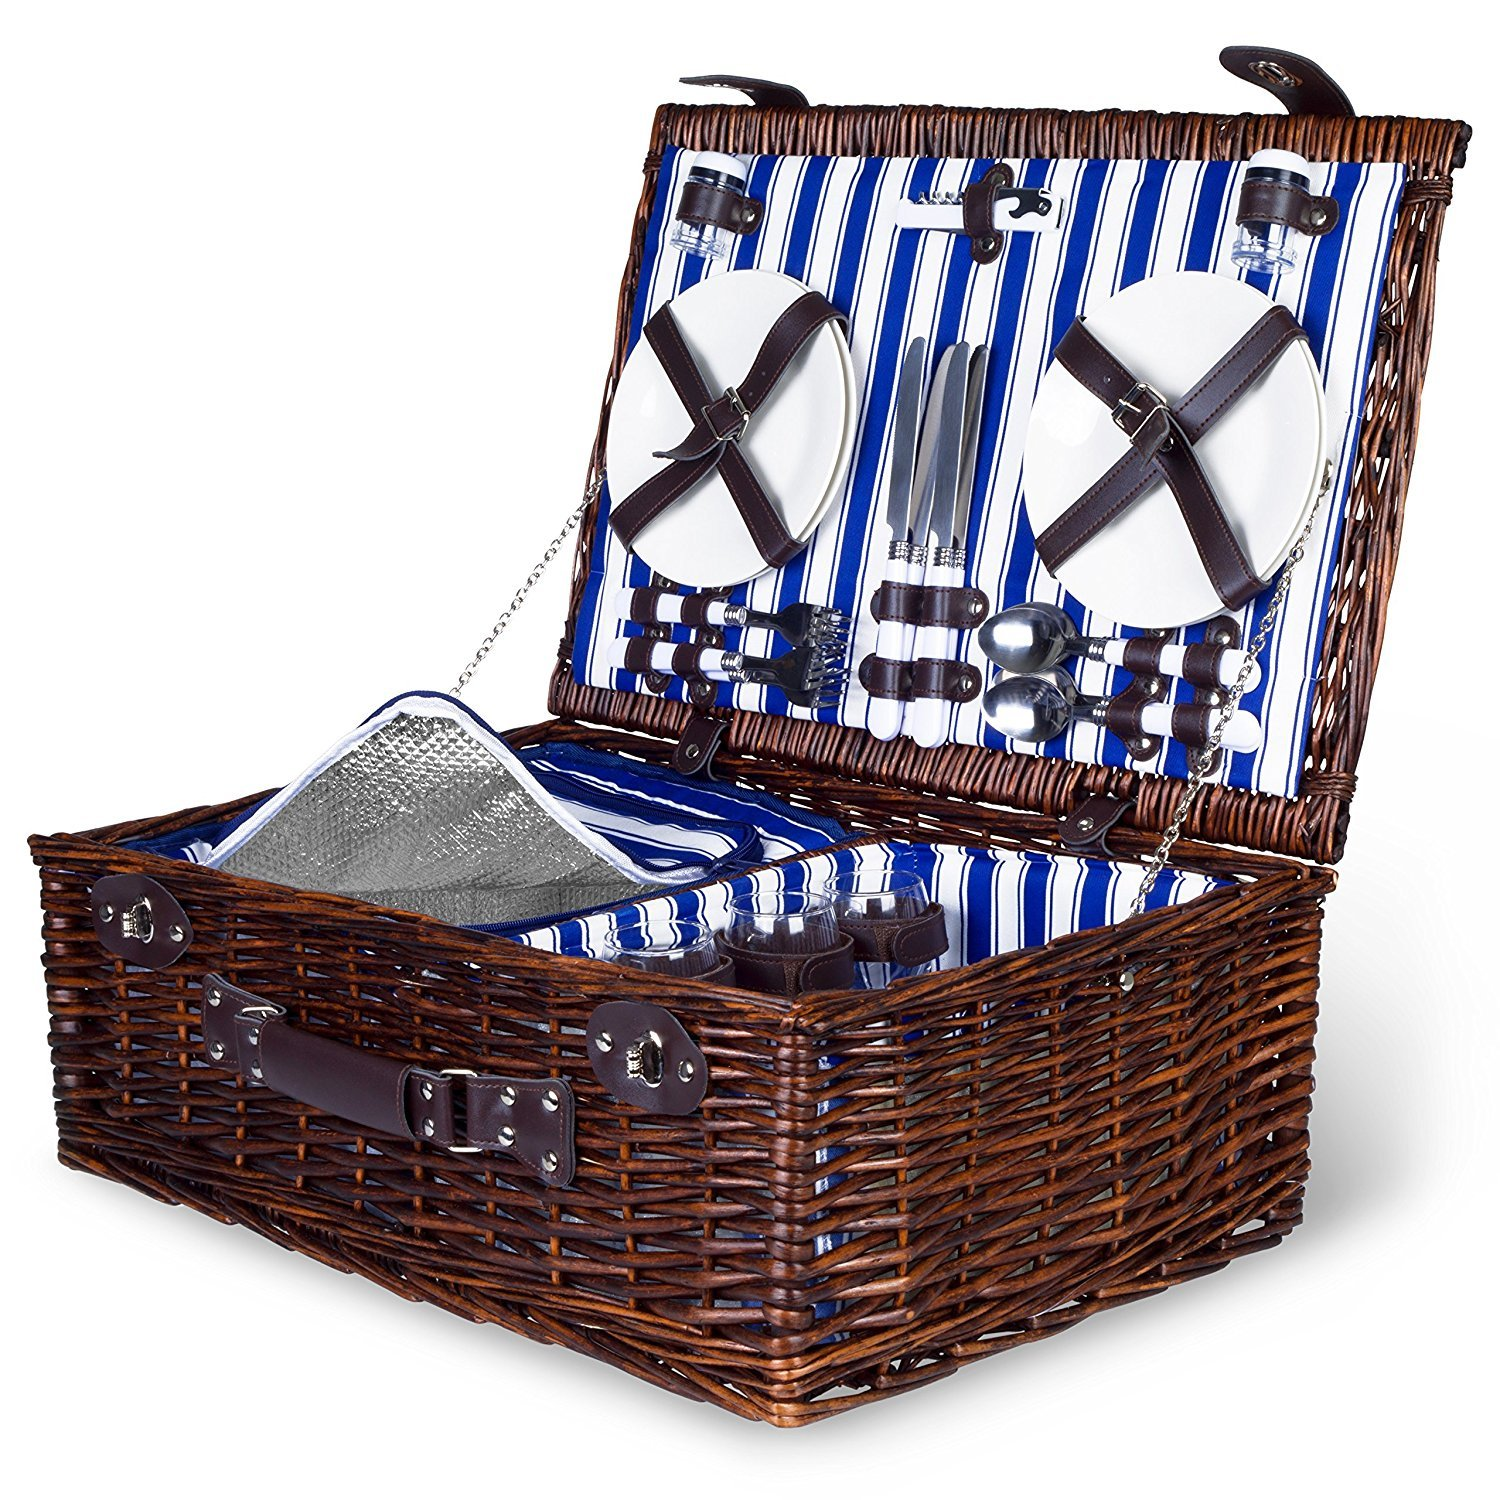 4 Person Wicker Picnic Basket | Deluxe Woven Willow Vintage Picnic Baskets |Extra-Large 22 X 15 - Porcelain Plates, Real Glass Wine Glasses, Stainless Steel Silverware, Opener - Free Cold Storage Bag by summerease